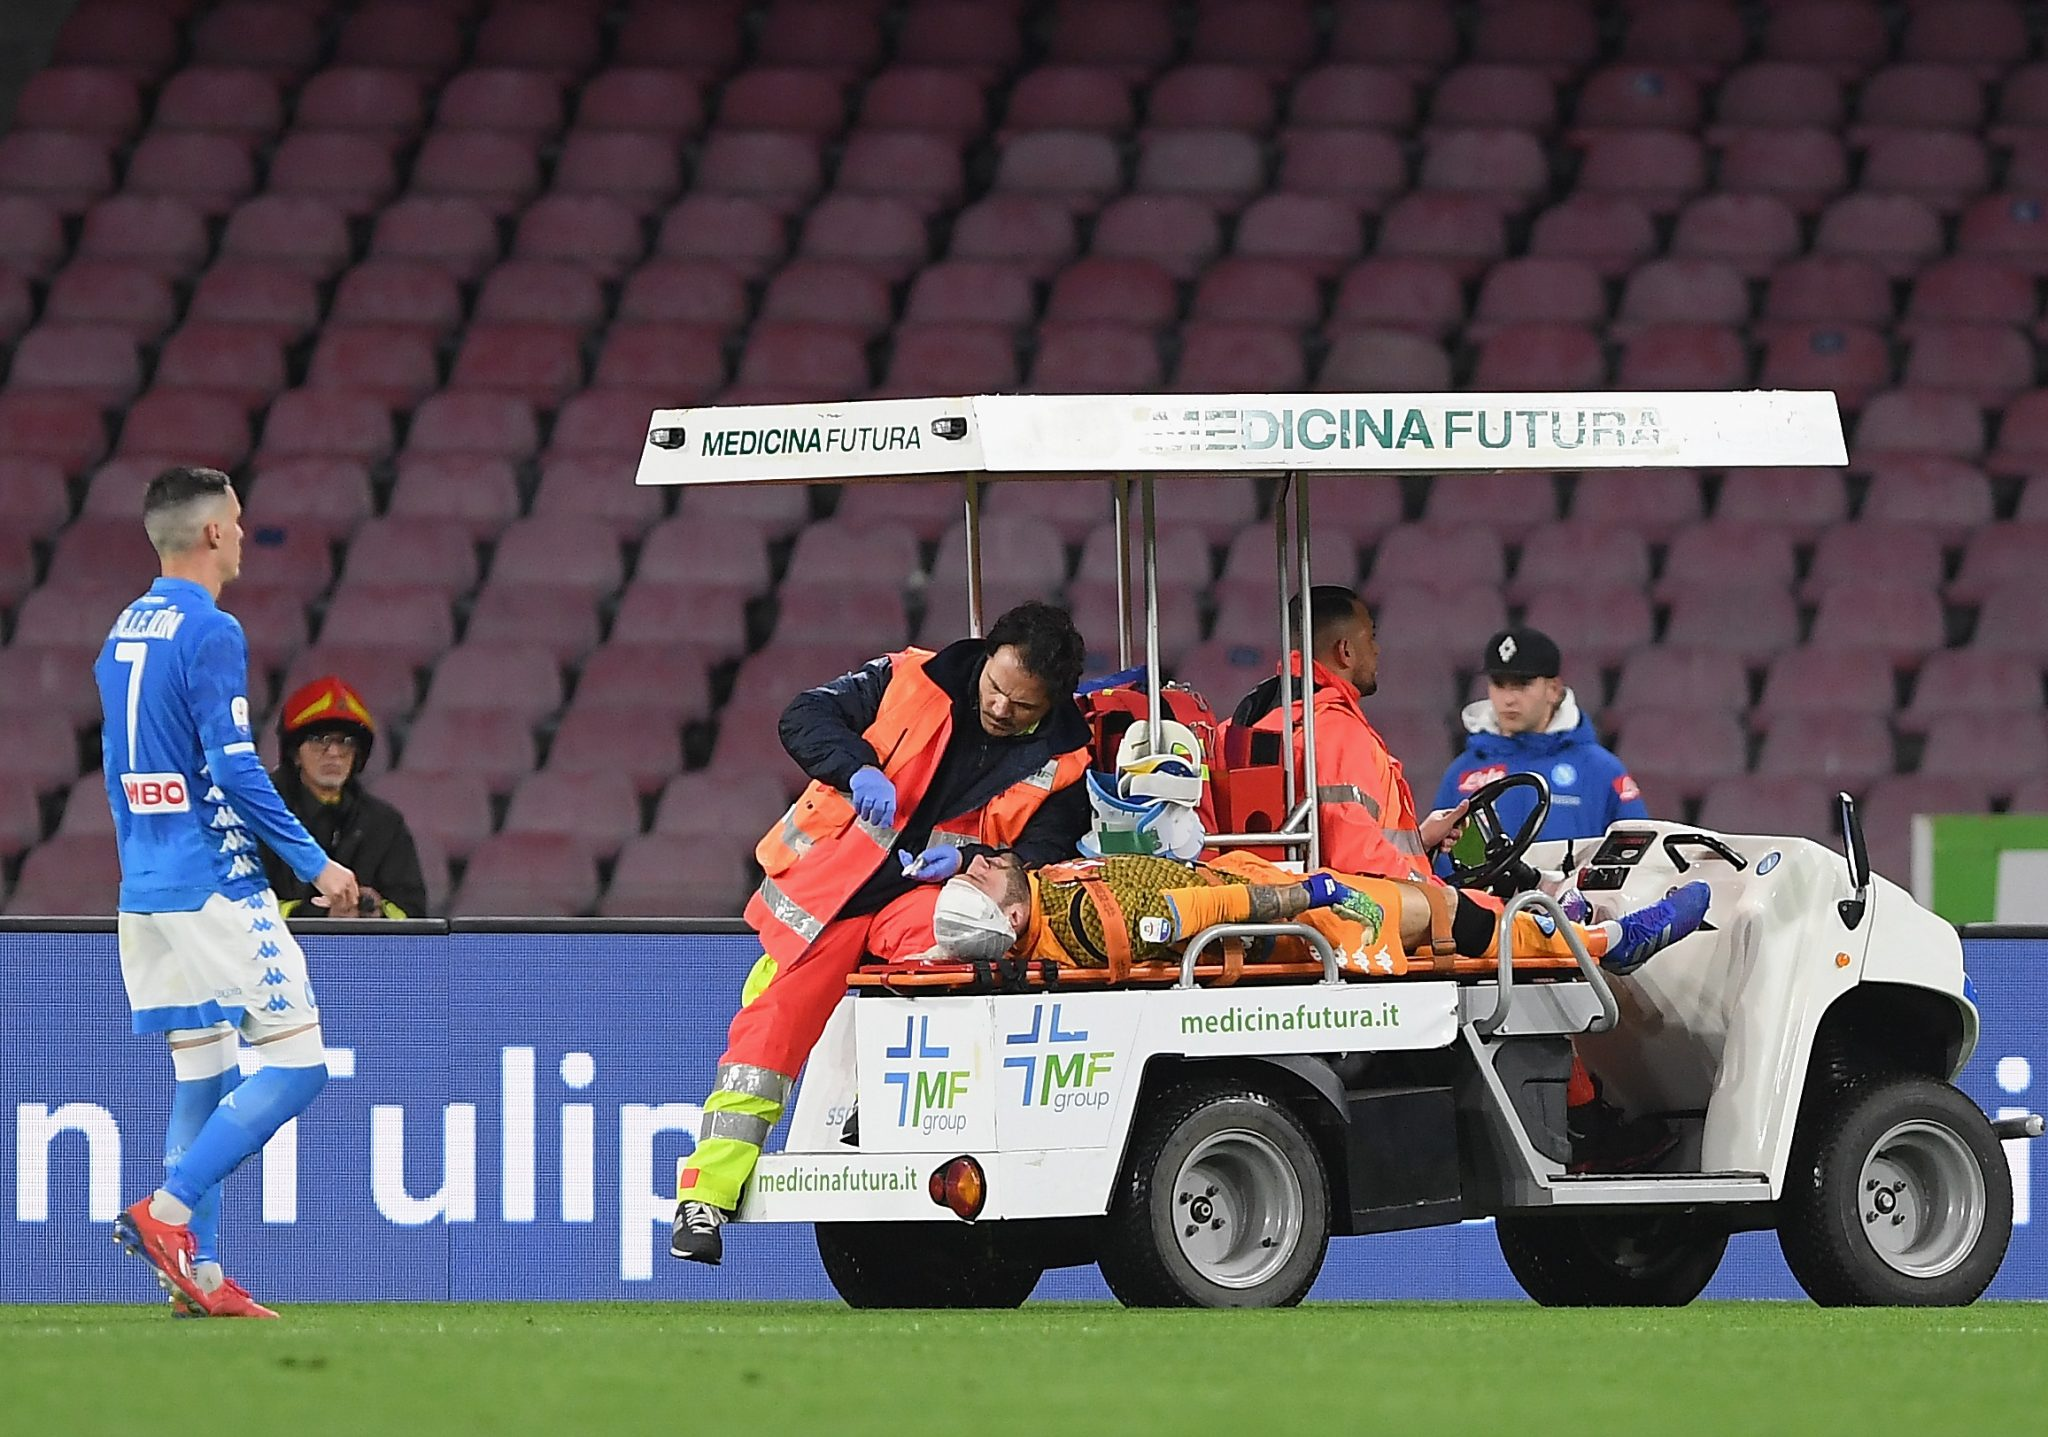 Napoli goalkeeper Ospina hospitalised after head injury